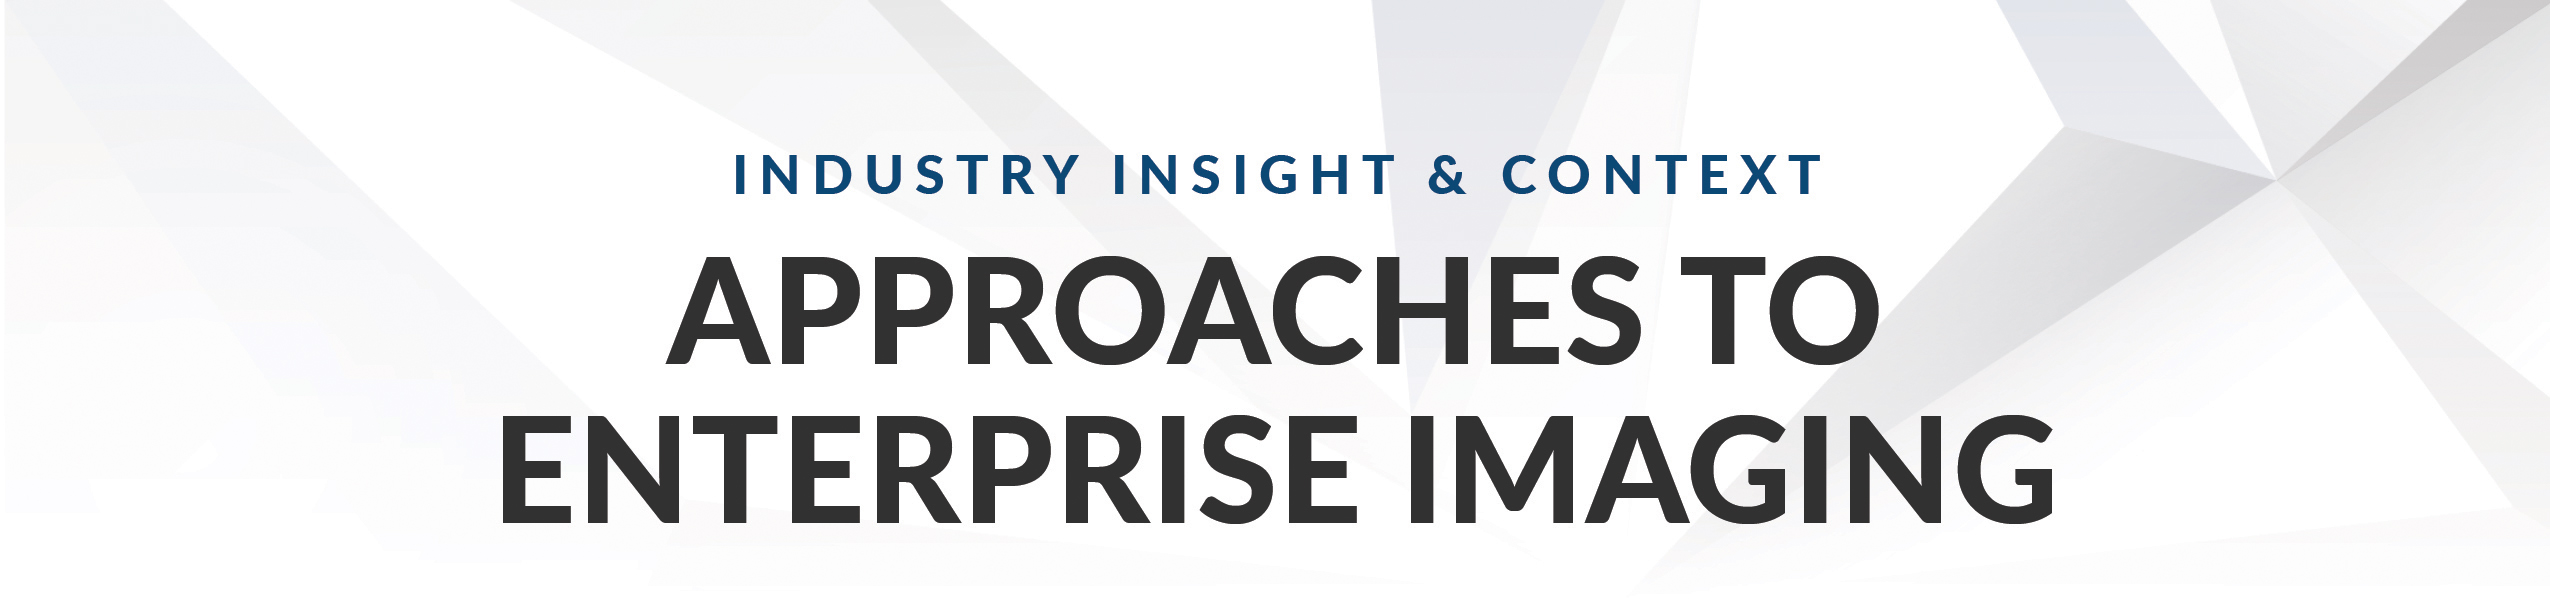 Enterprise Imaging 2016 Early Leaders in a Growing Market - KLAS Report